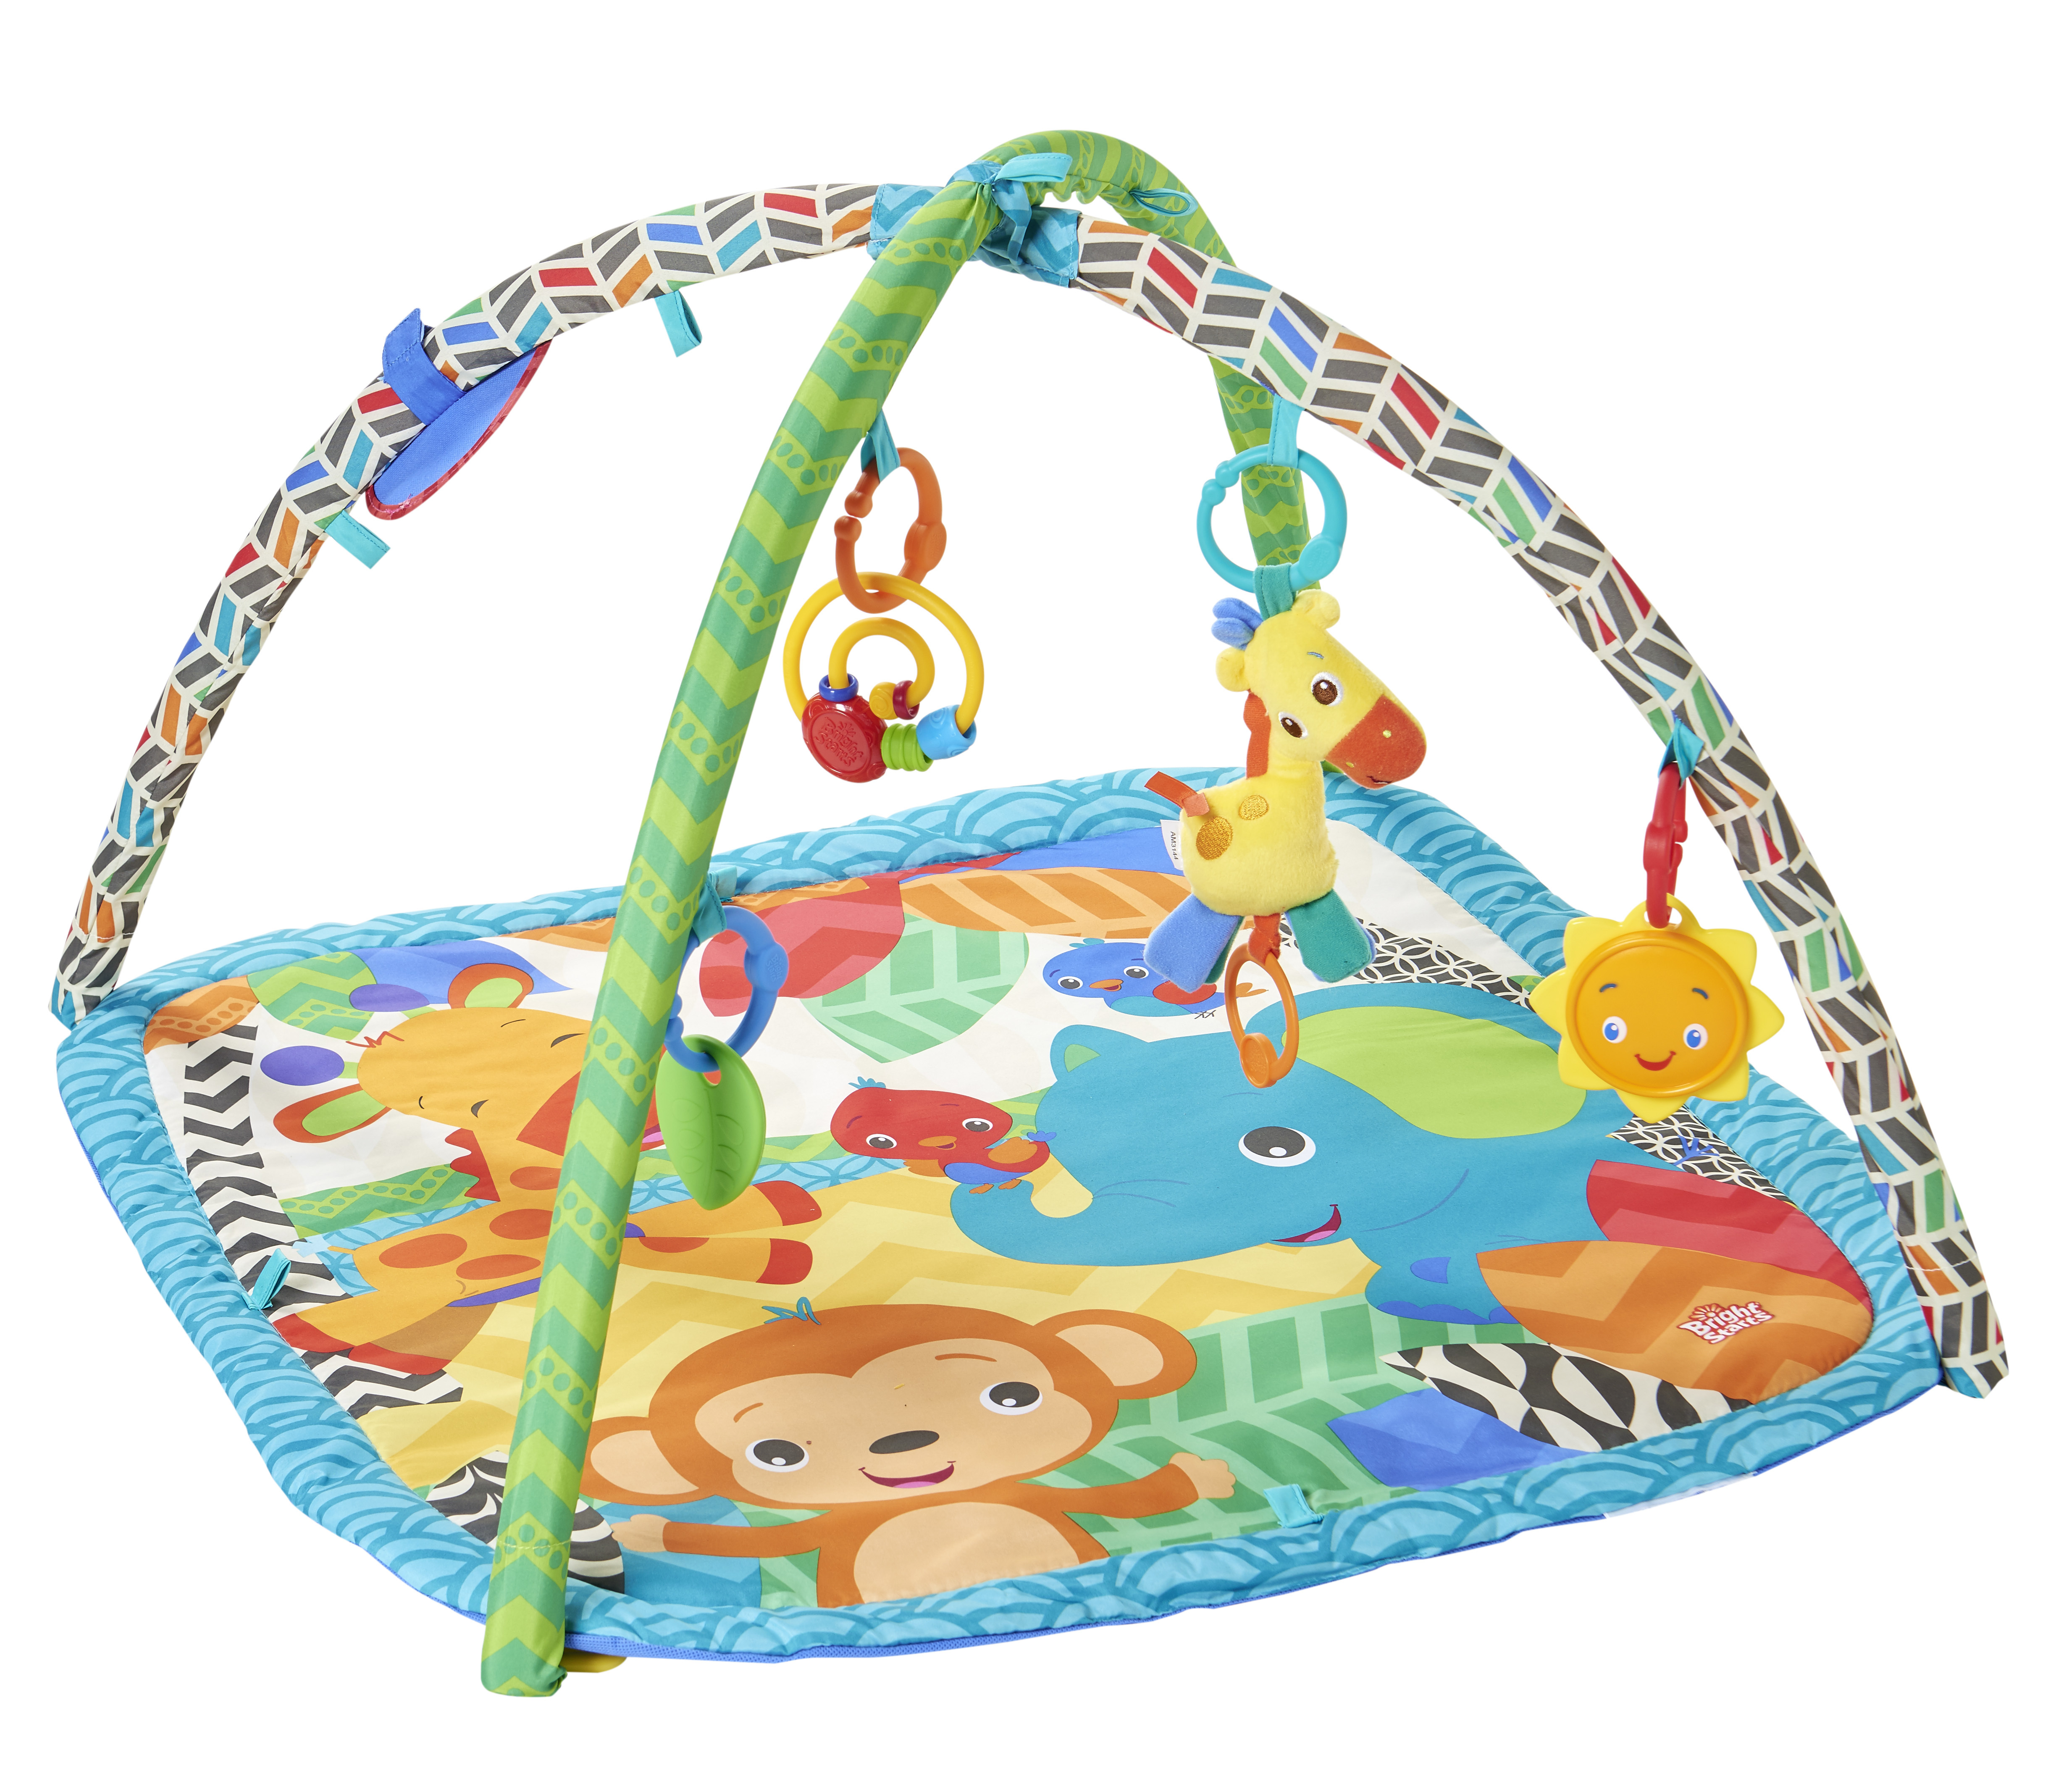 Bright starts tapis d veil zoo ty62507 pas cher - Tapis d eveil fisher price zoo deluxe ...